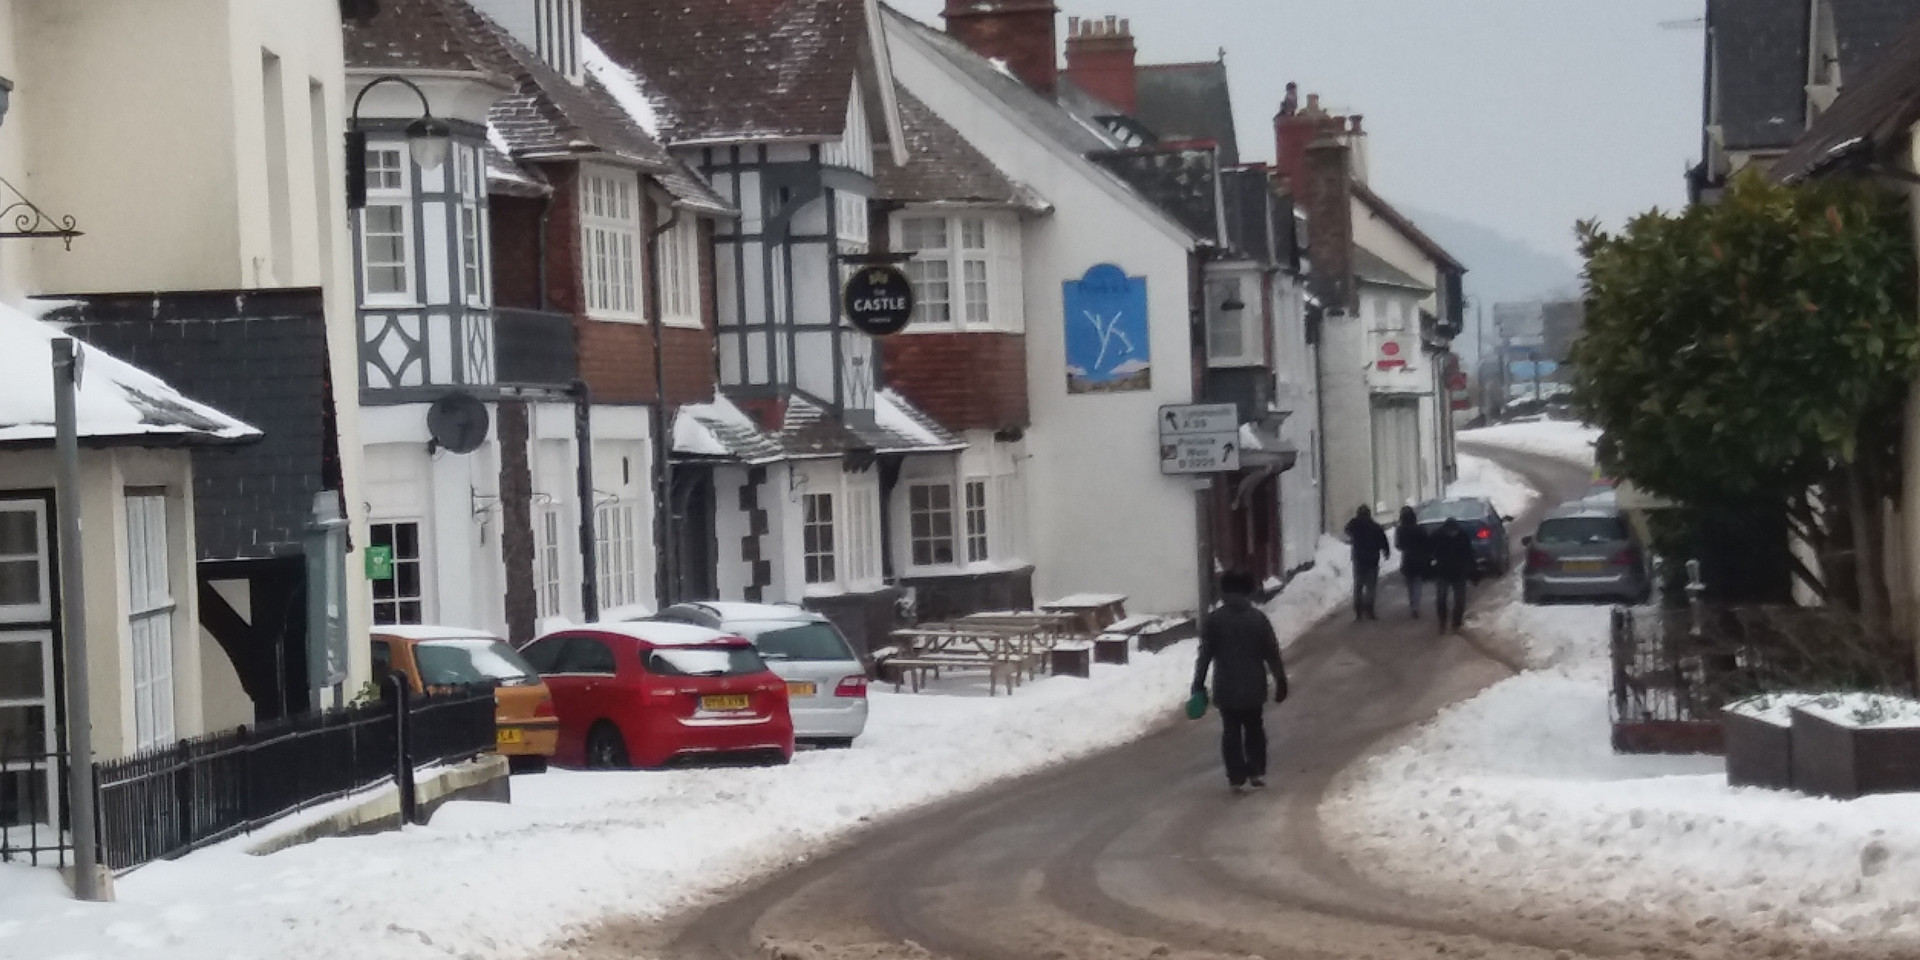 High Street in the snow